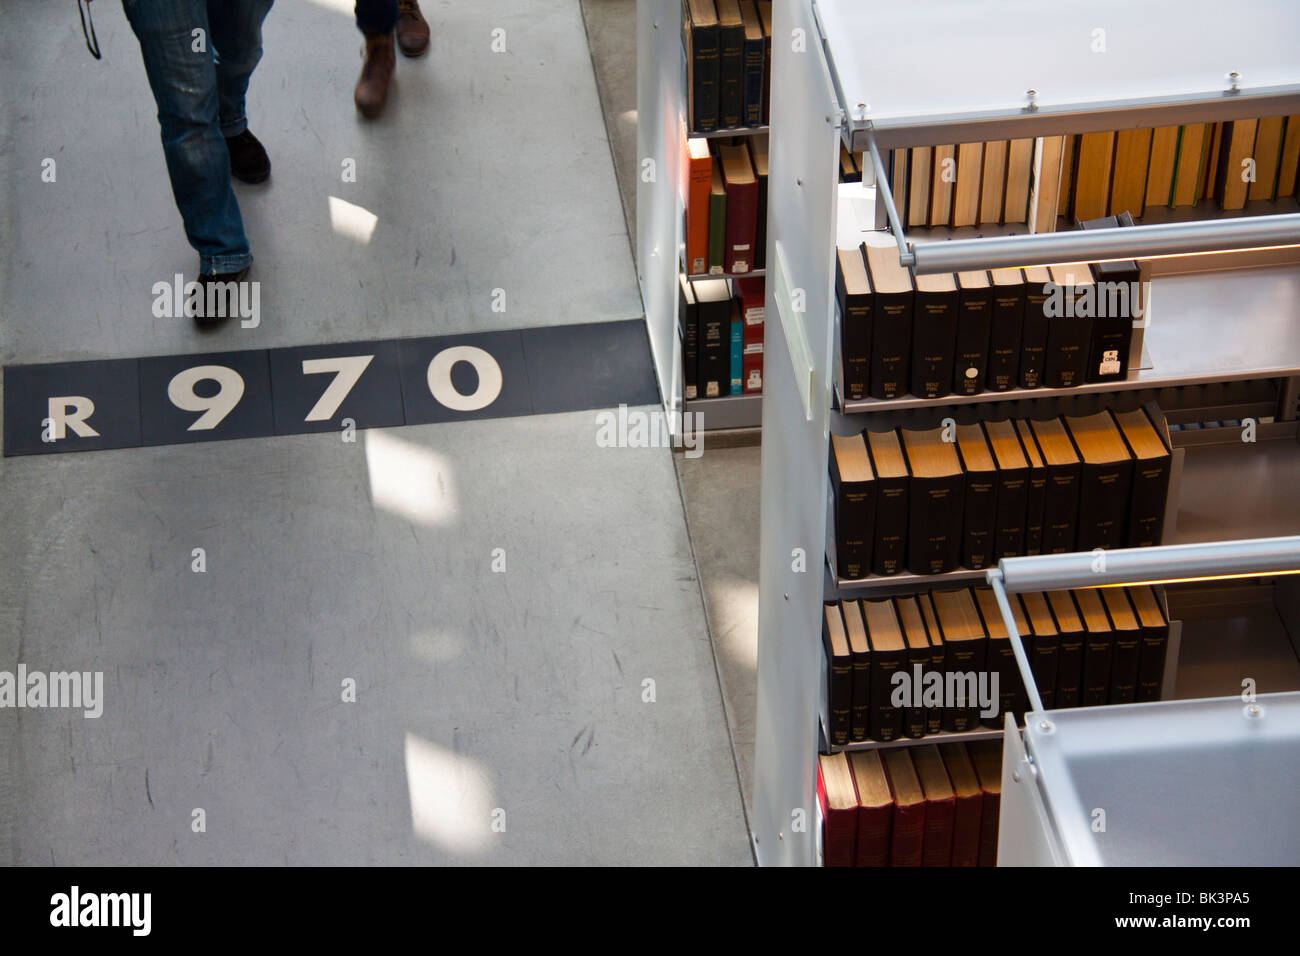 Dewey decimal classification numbers on floor of the downtown main branch, Seattle Public Library, Seattle, Washington - Stock Image